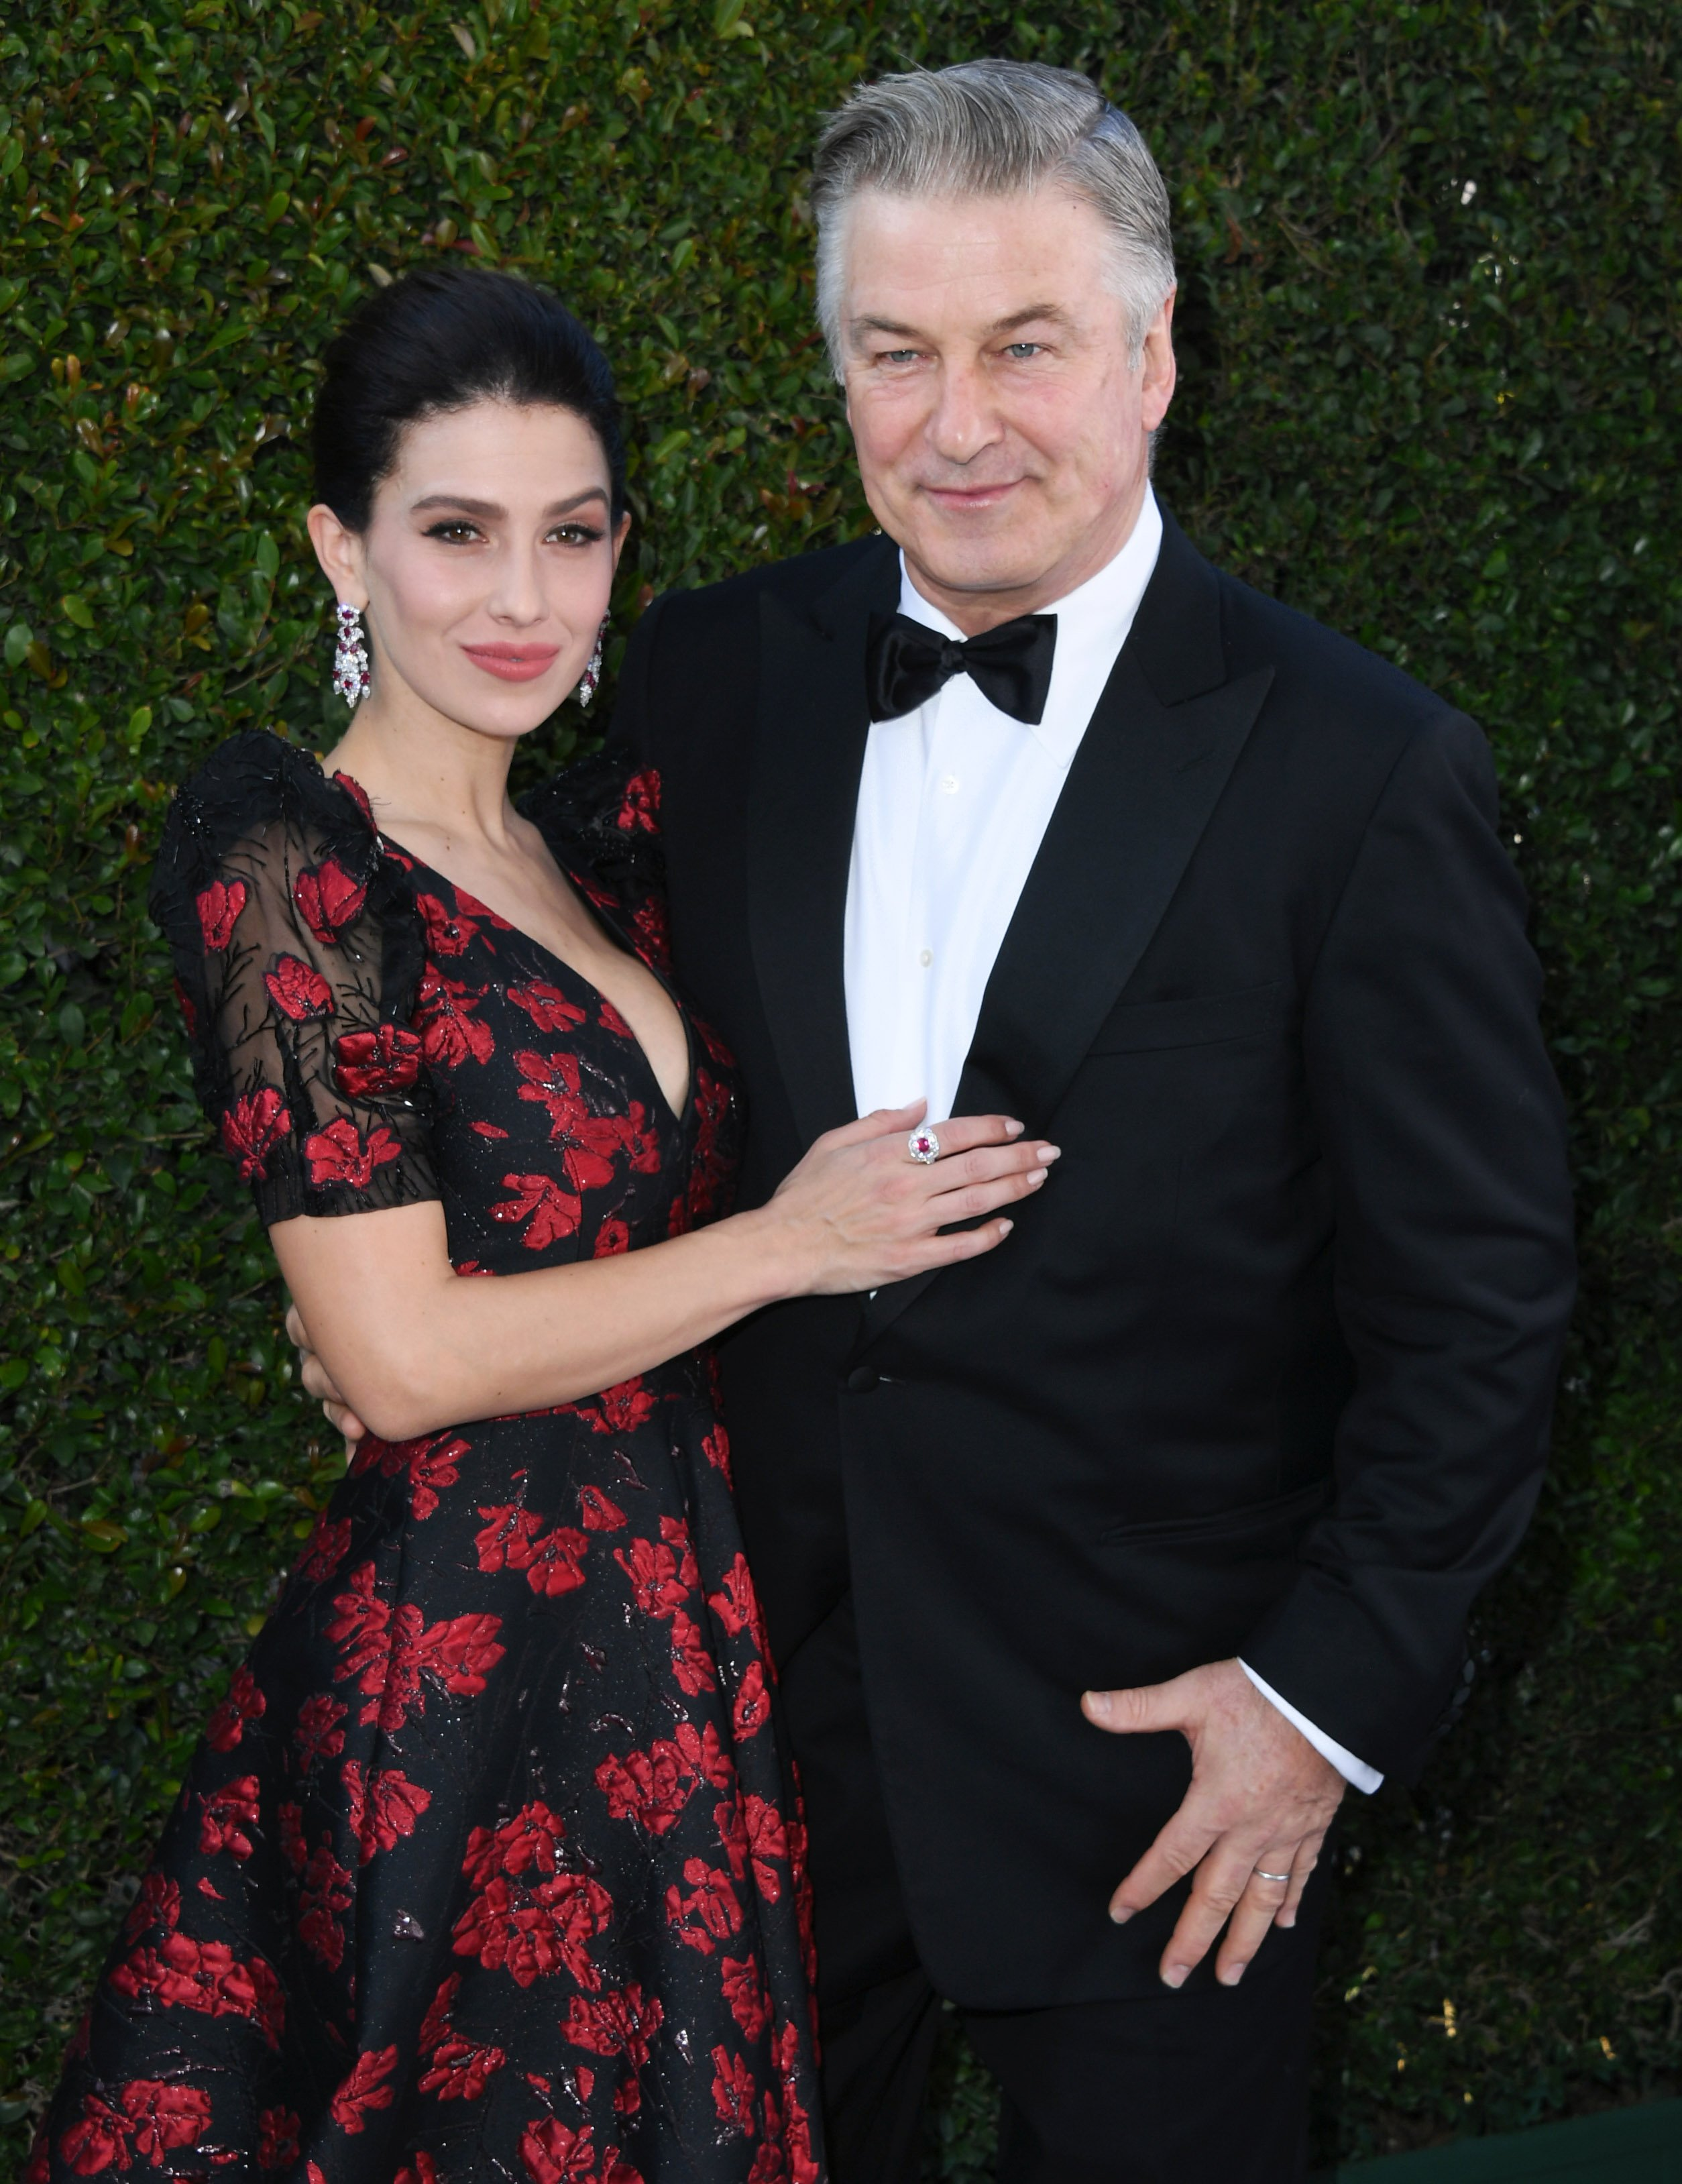 Hilaria Baldwin and Alec Baldwin attend 25th Annual Screen ActorsGuild Awards on January 27, 2019, in Los Angeles, California. | Source: Getty Images.